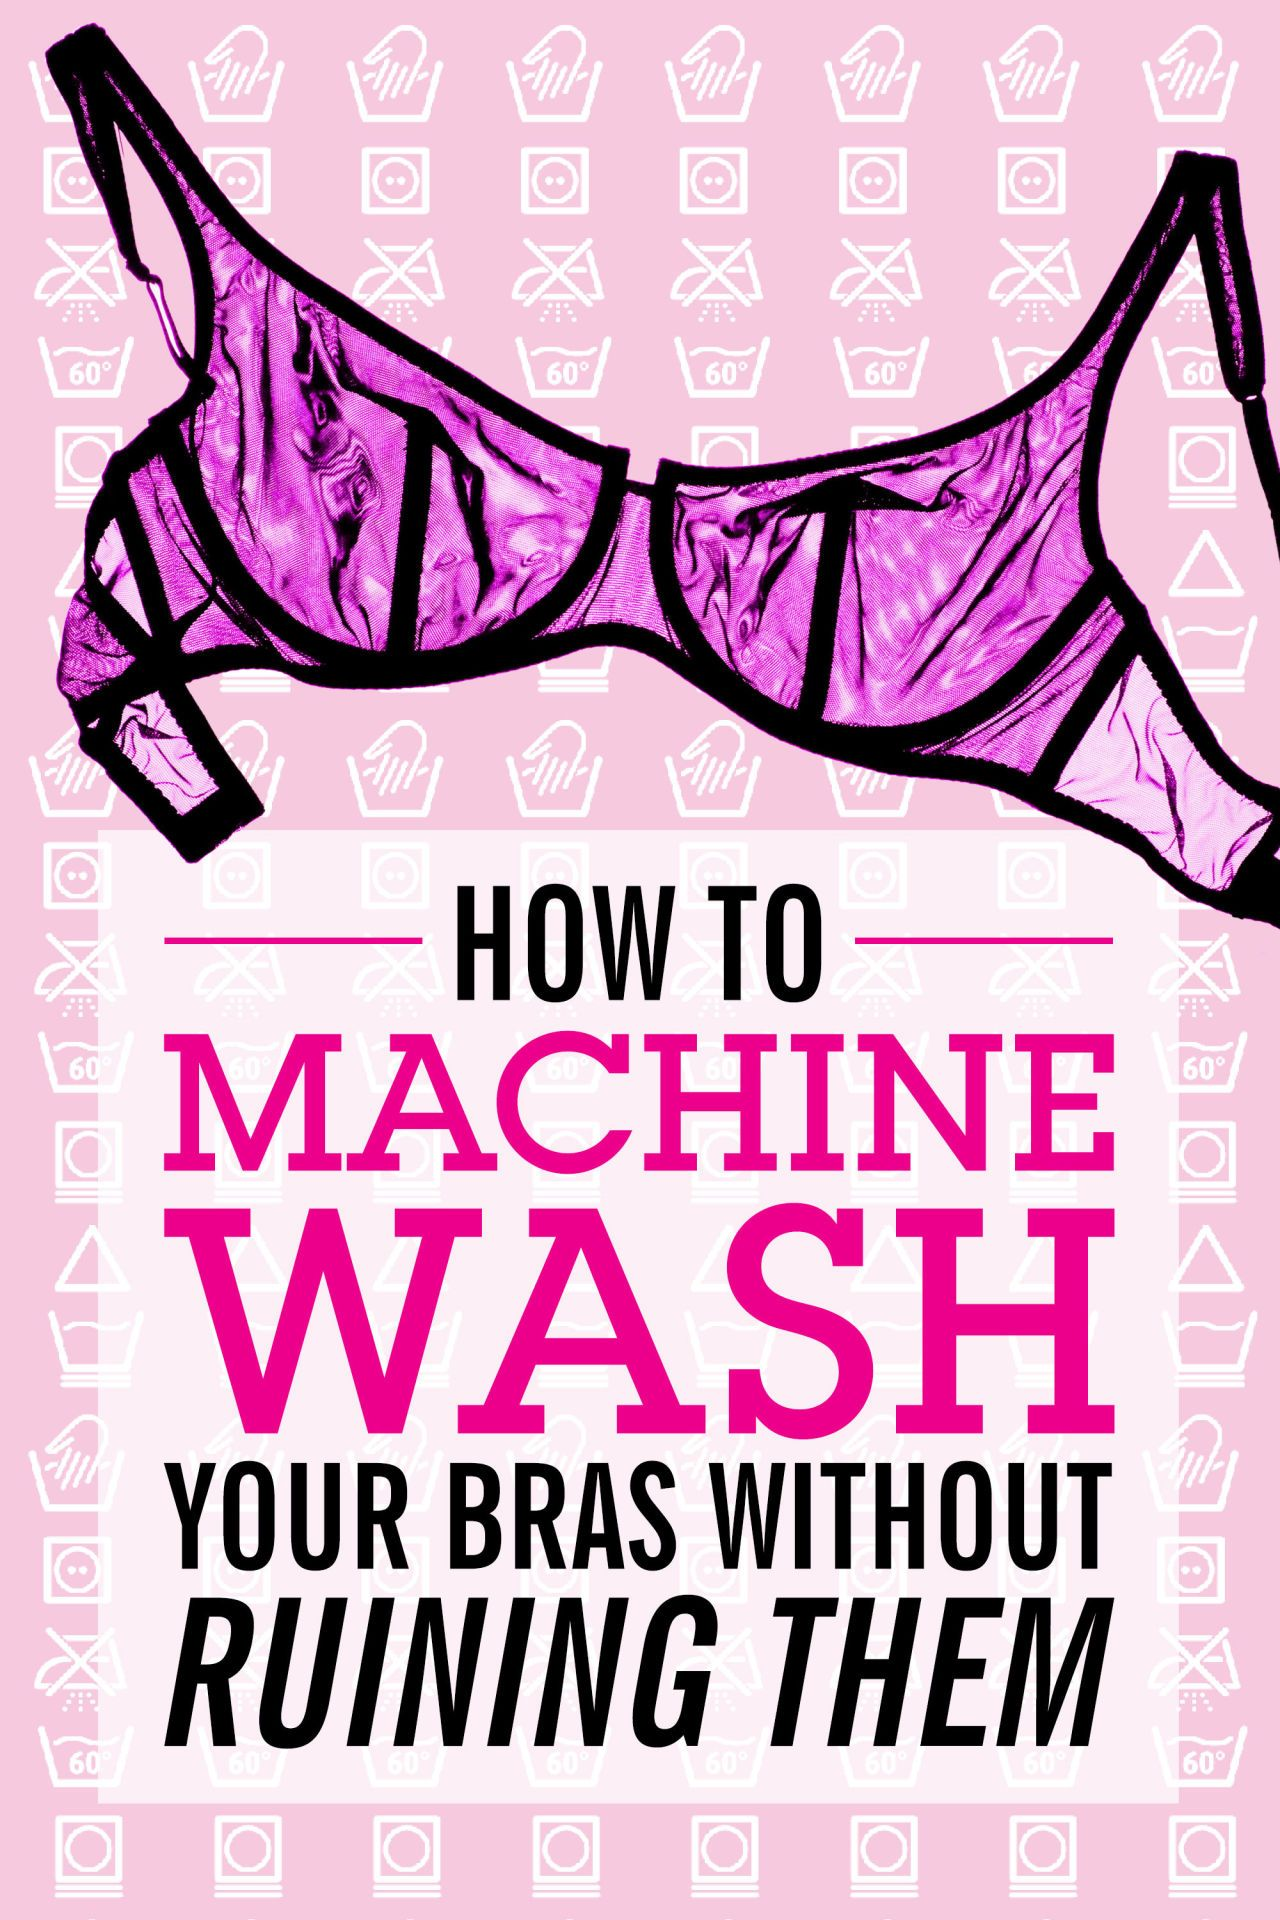 4ace132b5425 HOW TO WASH YOUR BRAS: Who has time to hand-wash? Basically, no one. If  you're going to wash your bras in a machine, use this guide to do it the  best and ...